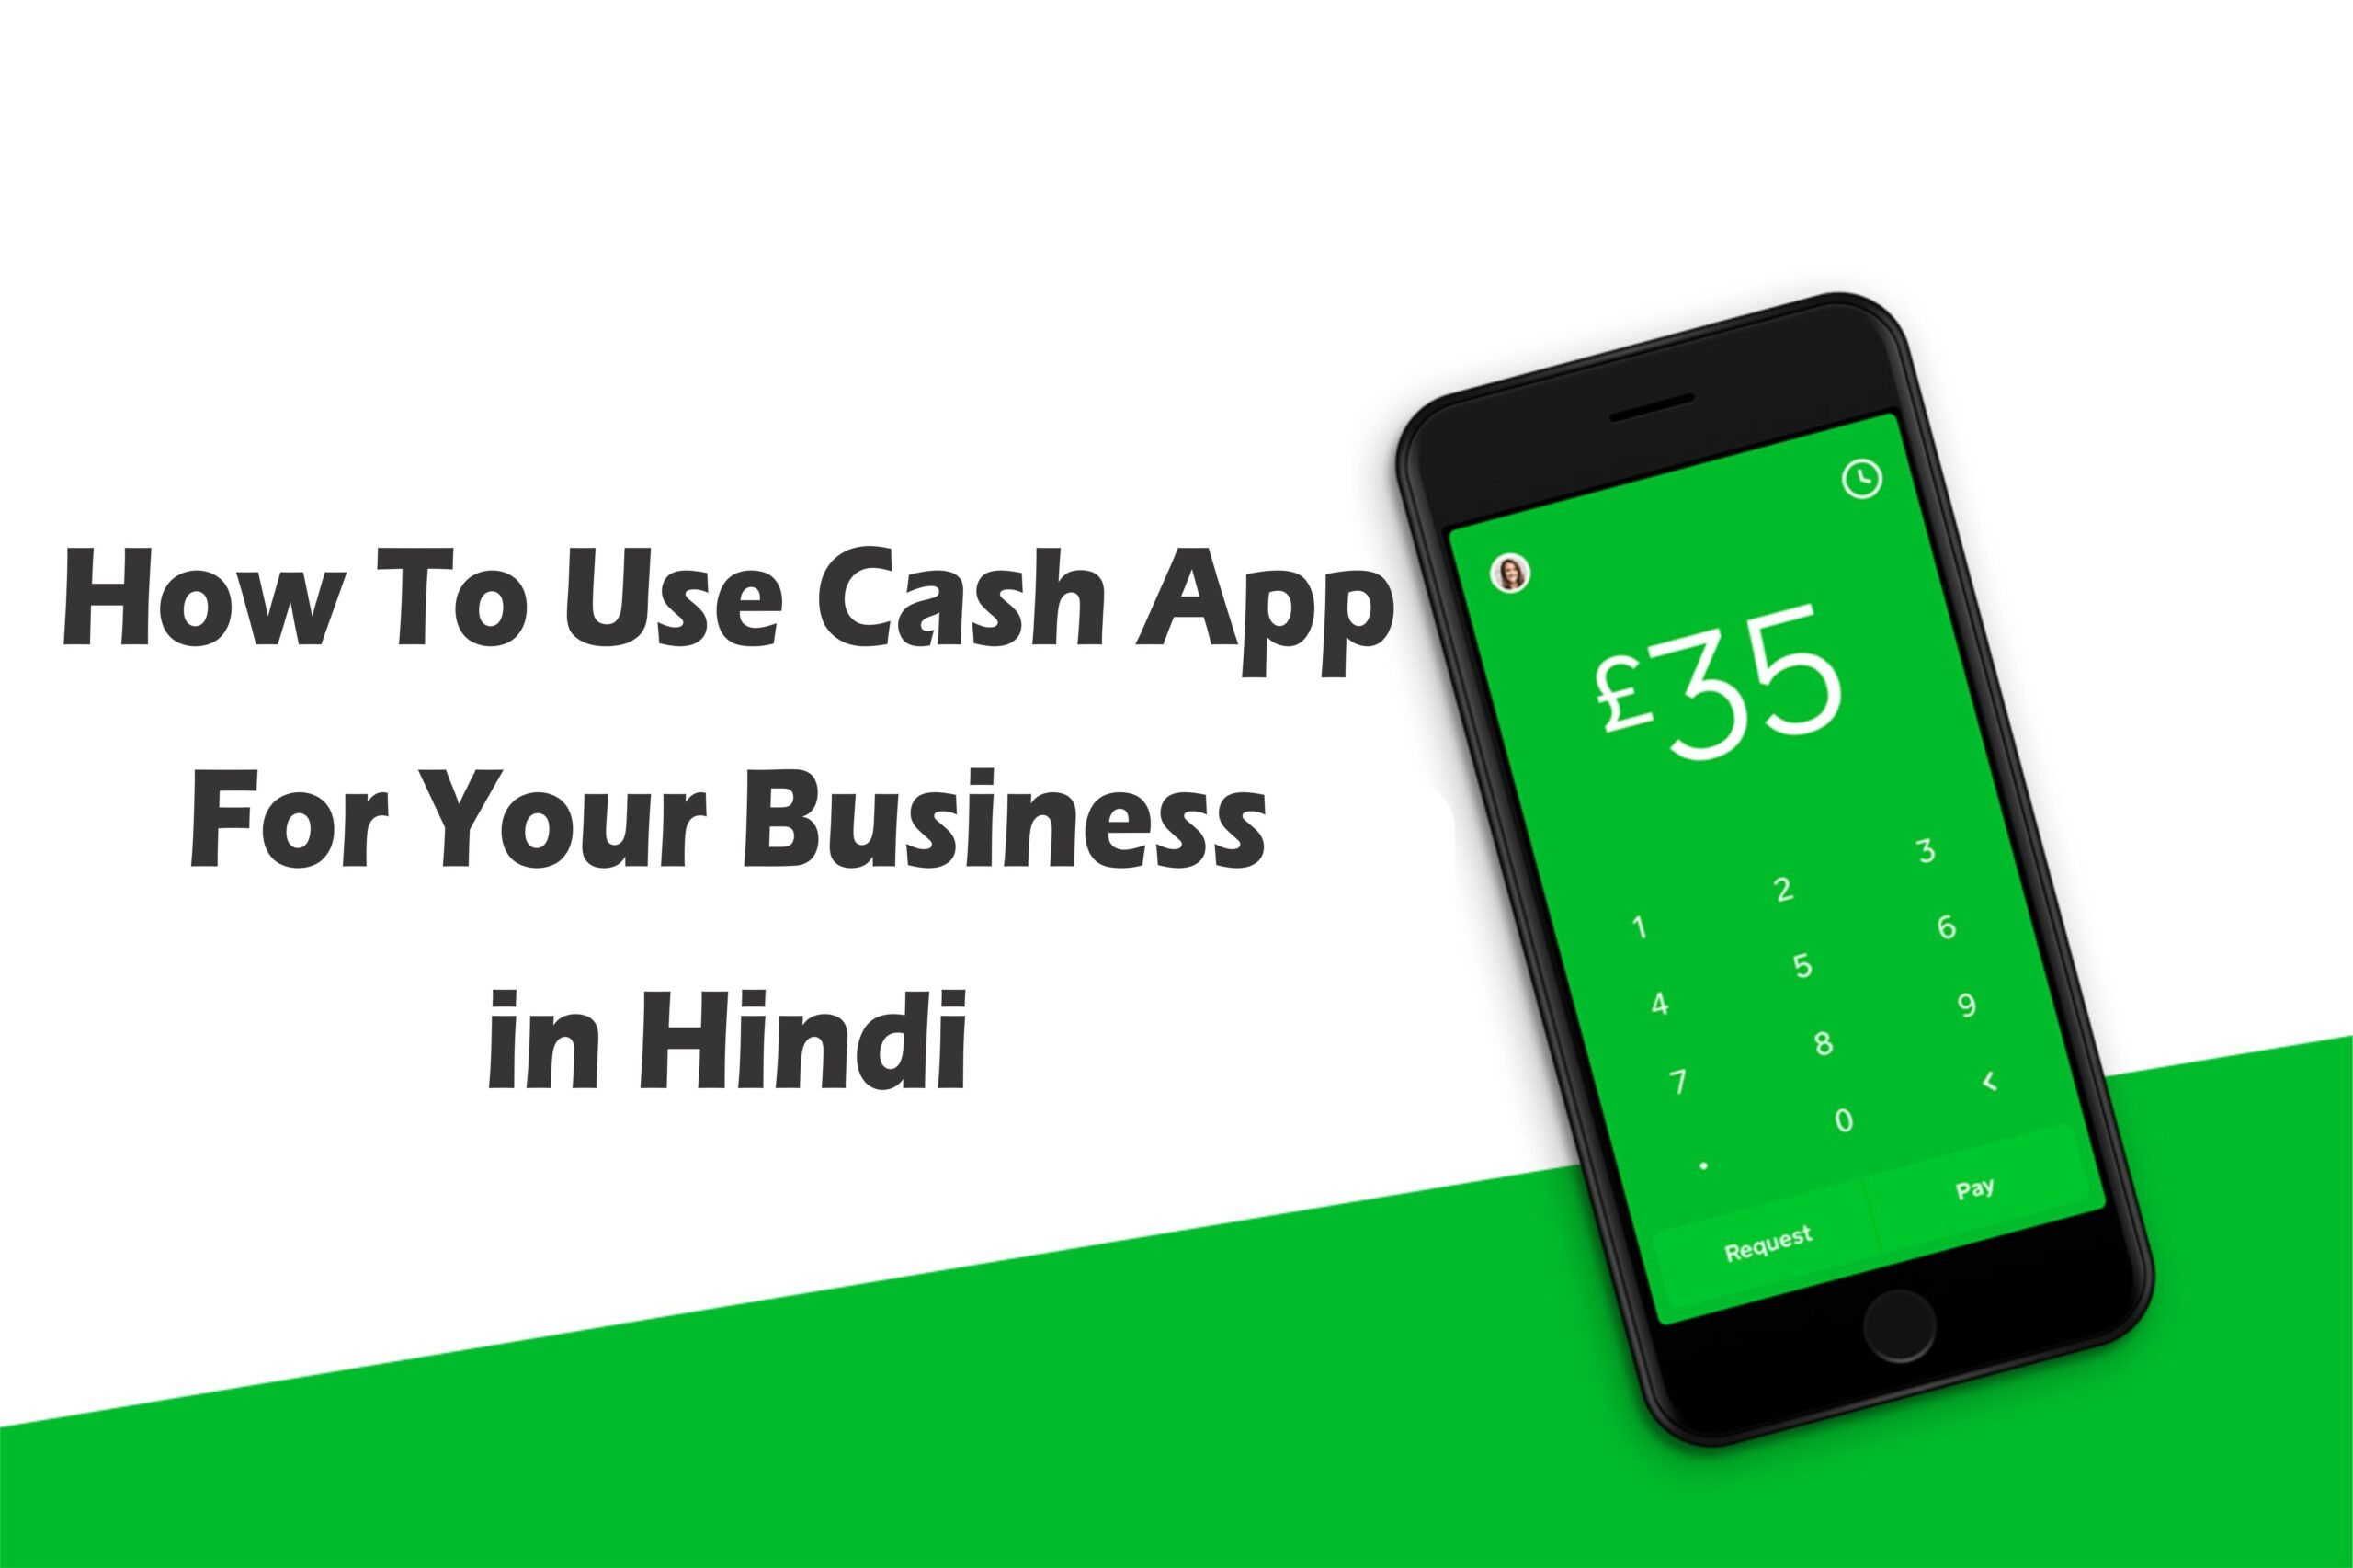 How To Use Cash App For Your Business in Hindi